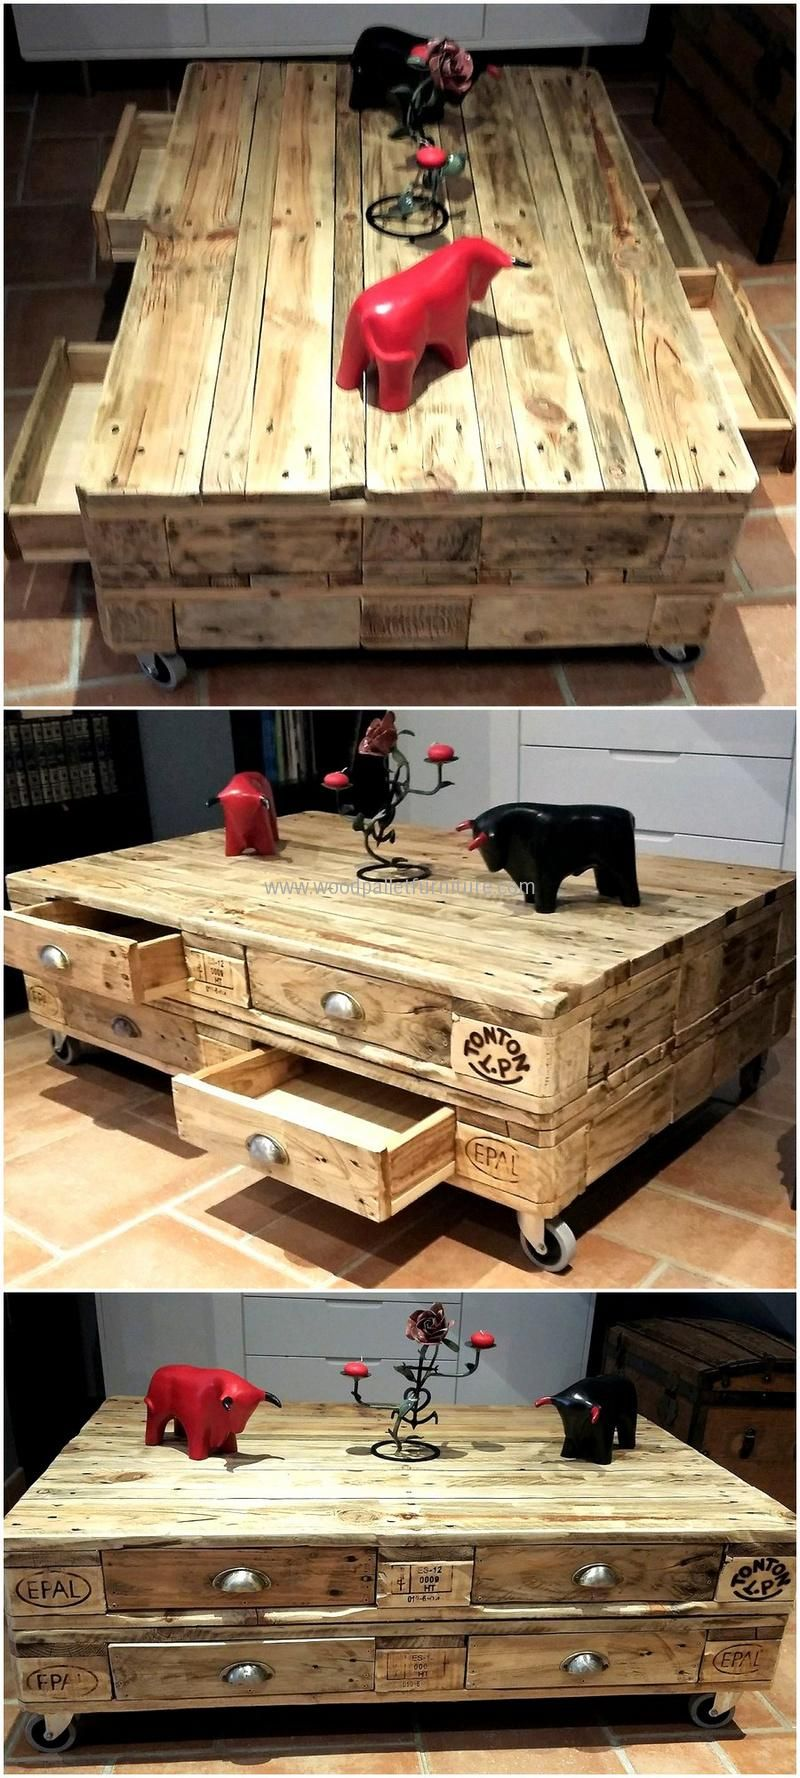 Wohnzimmer Möbel Upcycling 50 Cool Ideas For Wood Pallets Upcycling | Wohnzimmer